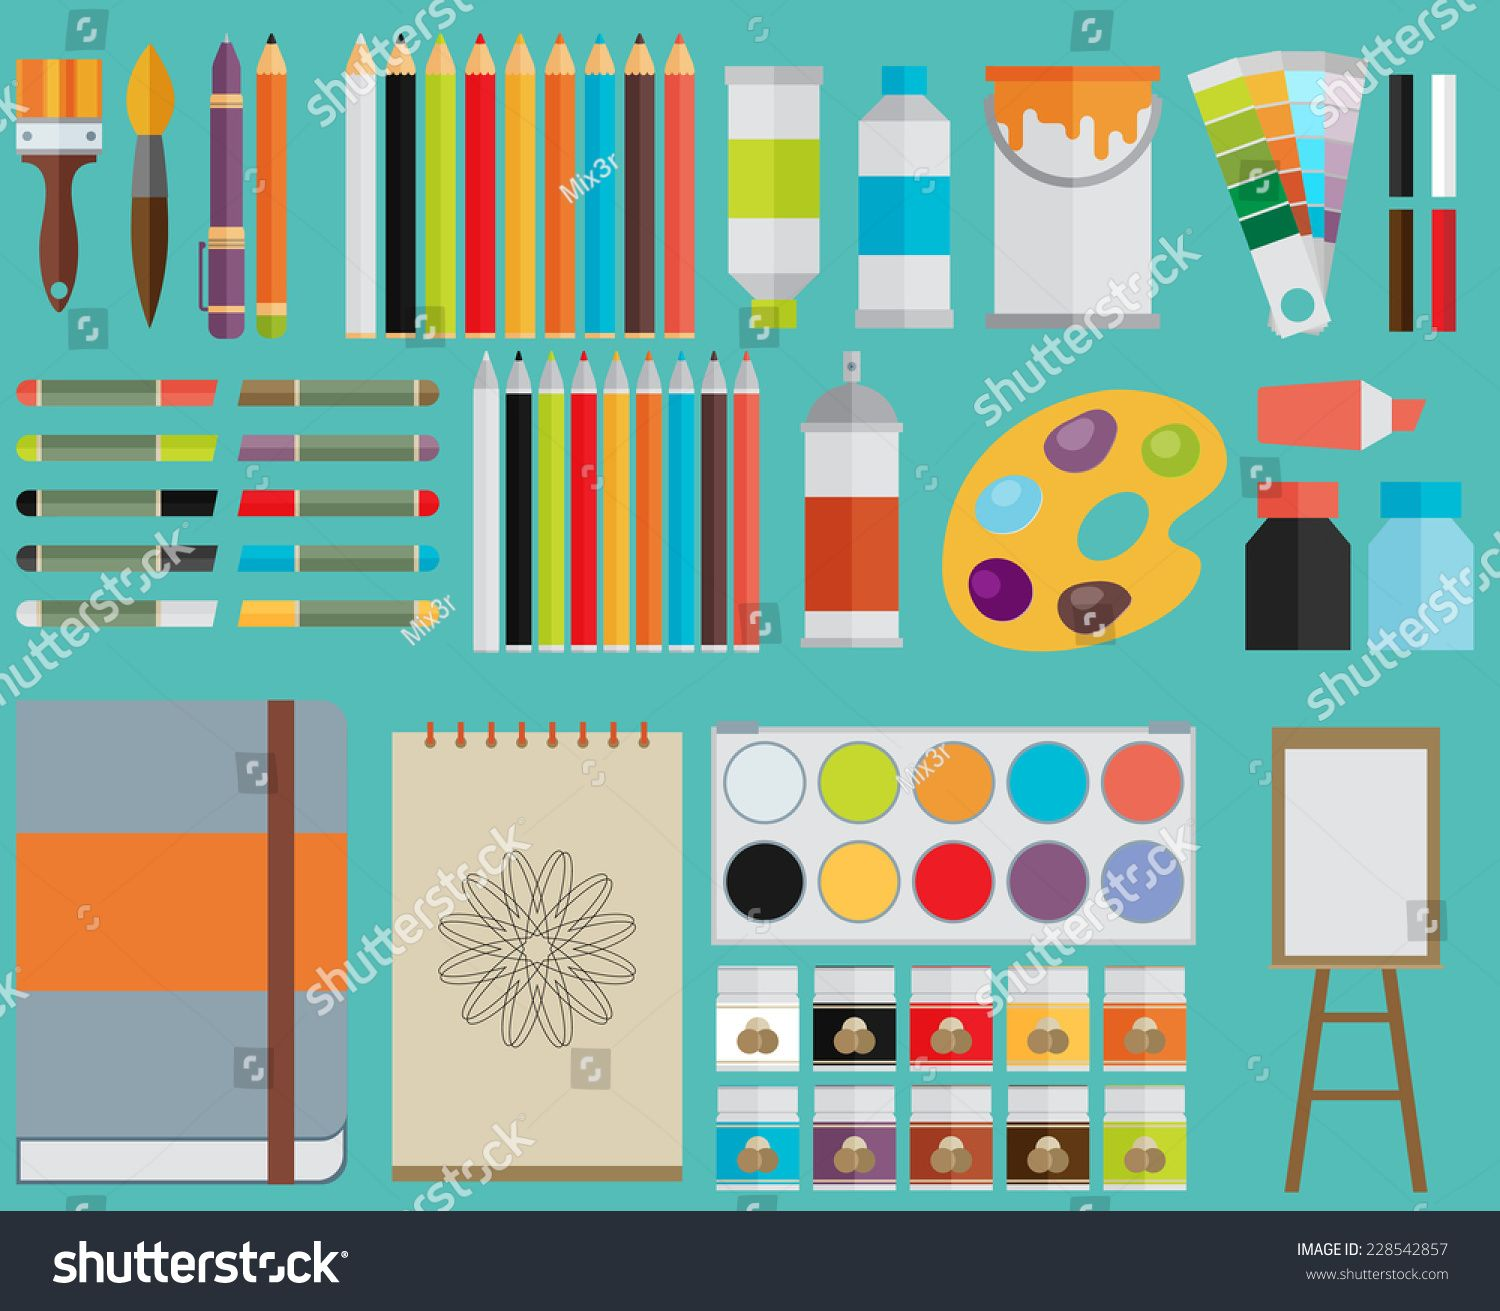 Colored Flat Design Vector Illustration Icons Set Of Art Supplies